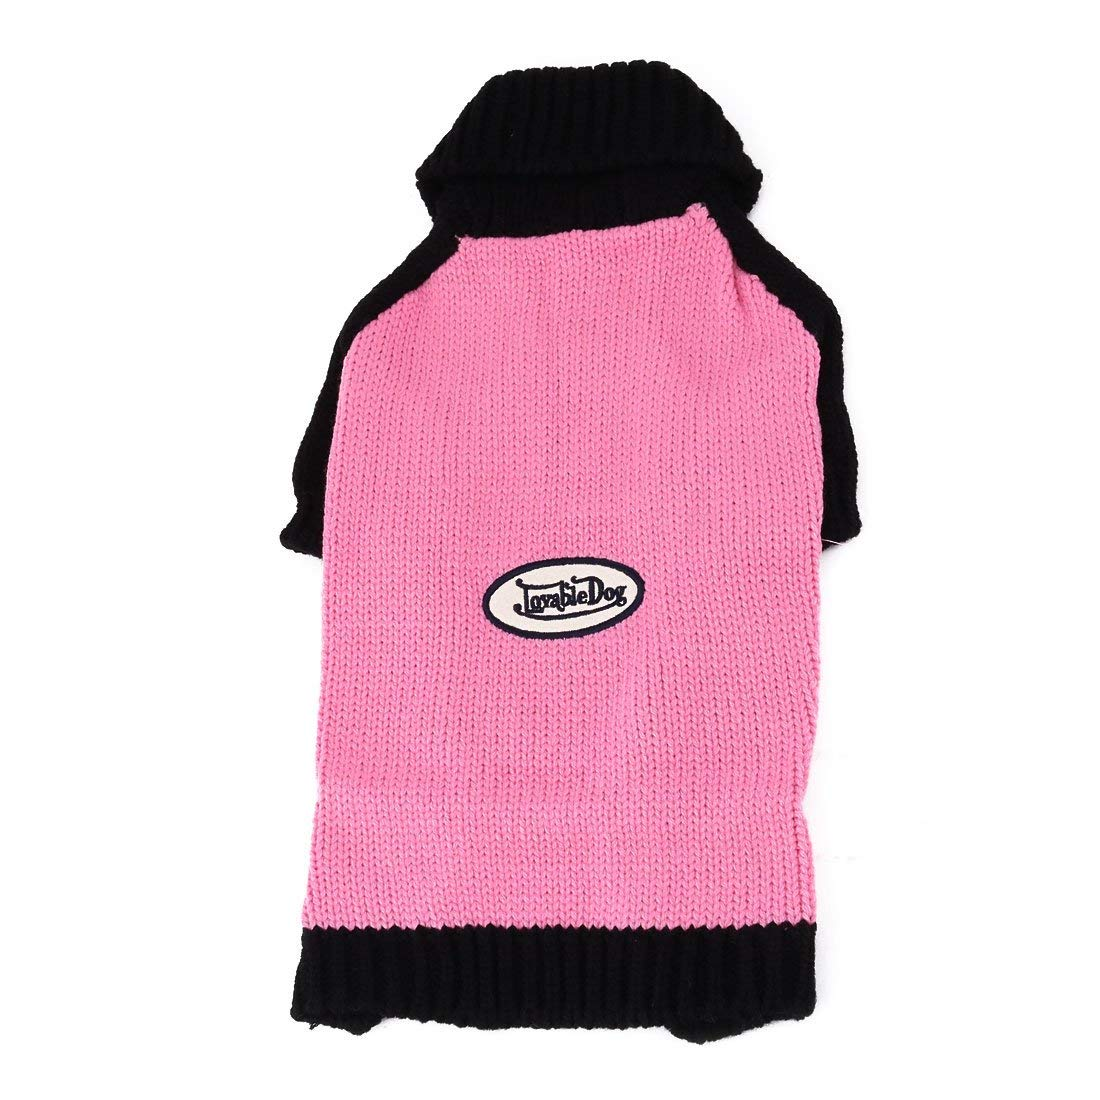 Acrylic Household Winter Autumn Puppy Dog Warming Knit Sweater Clothes Apparel